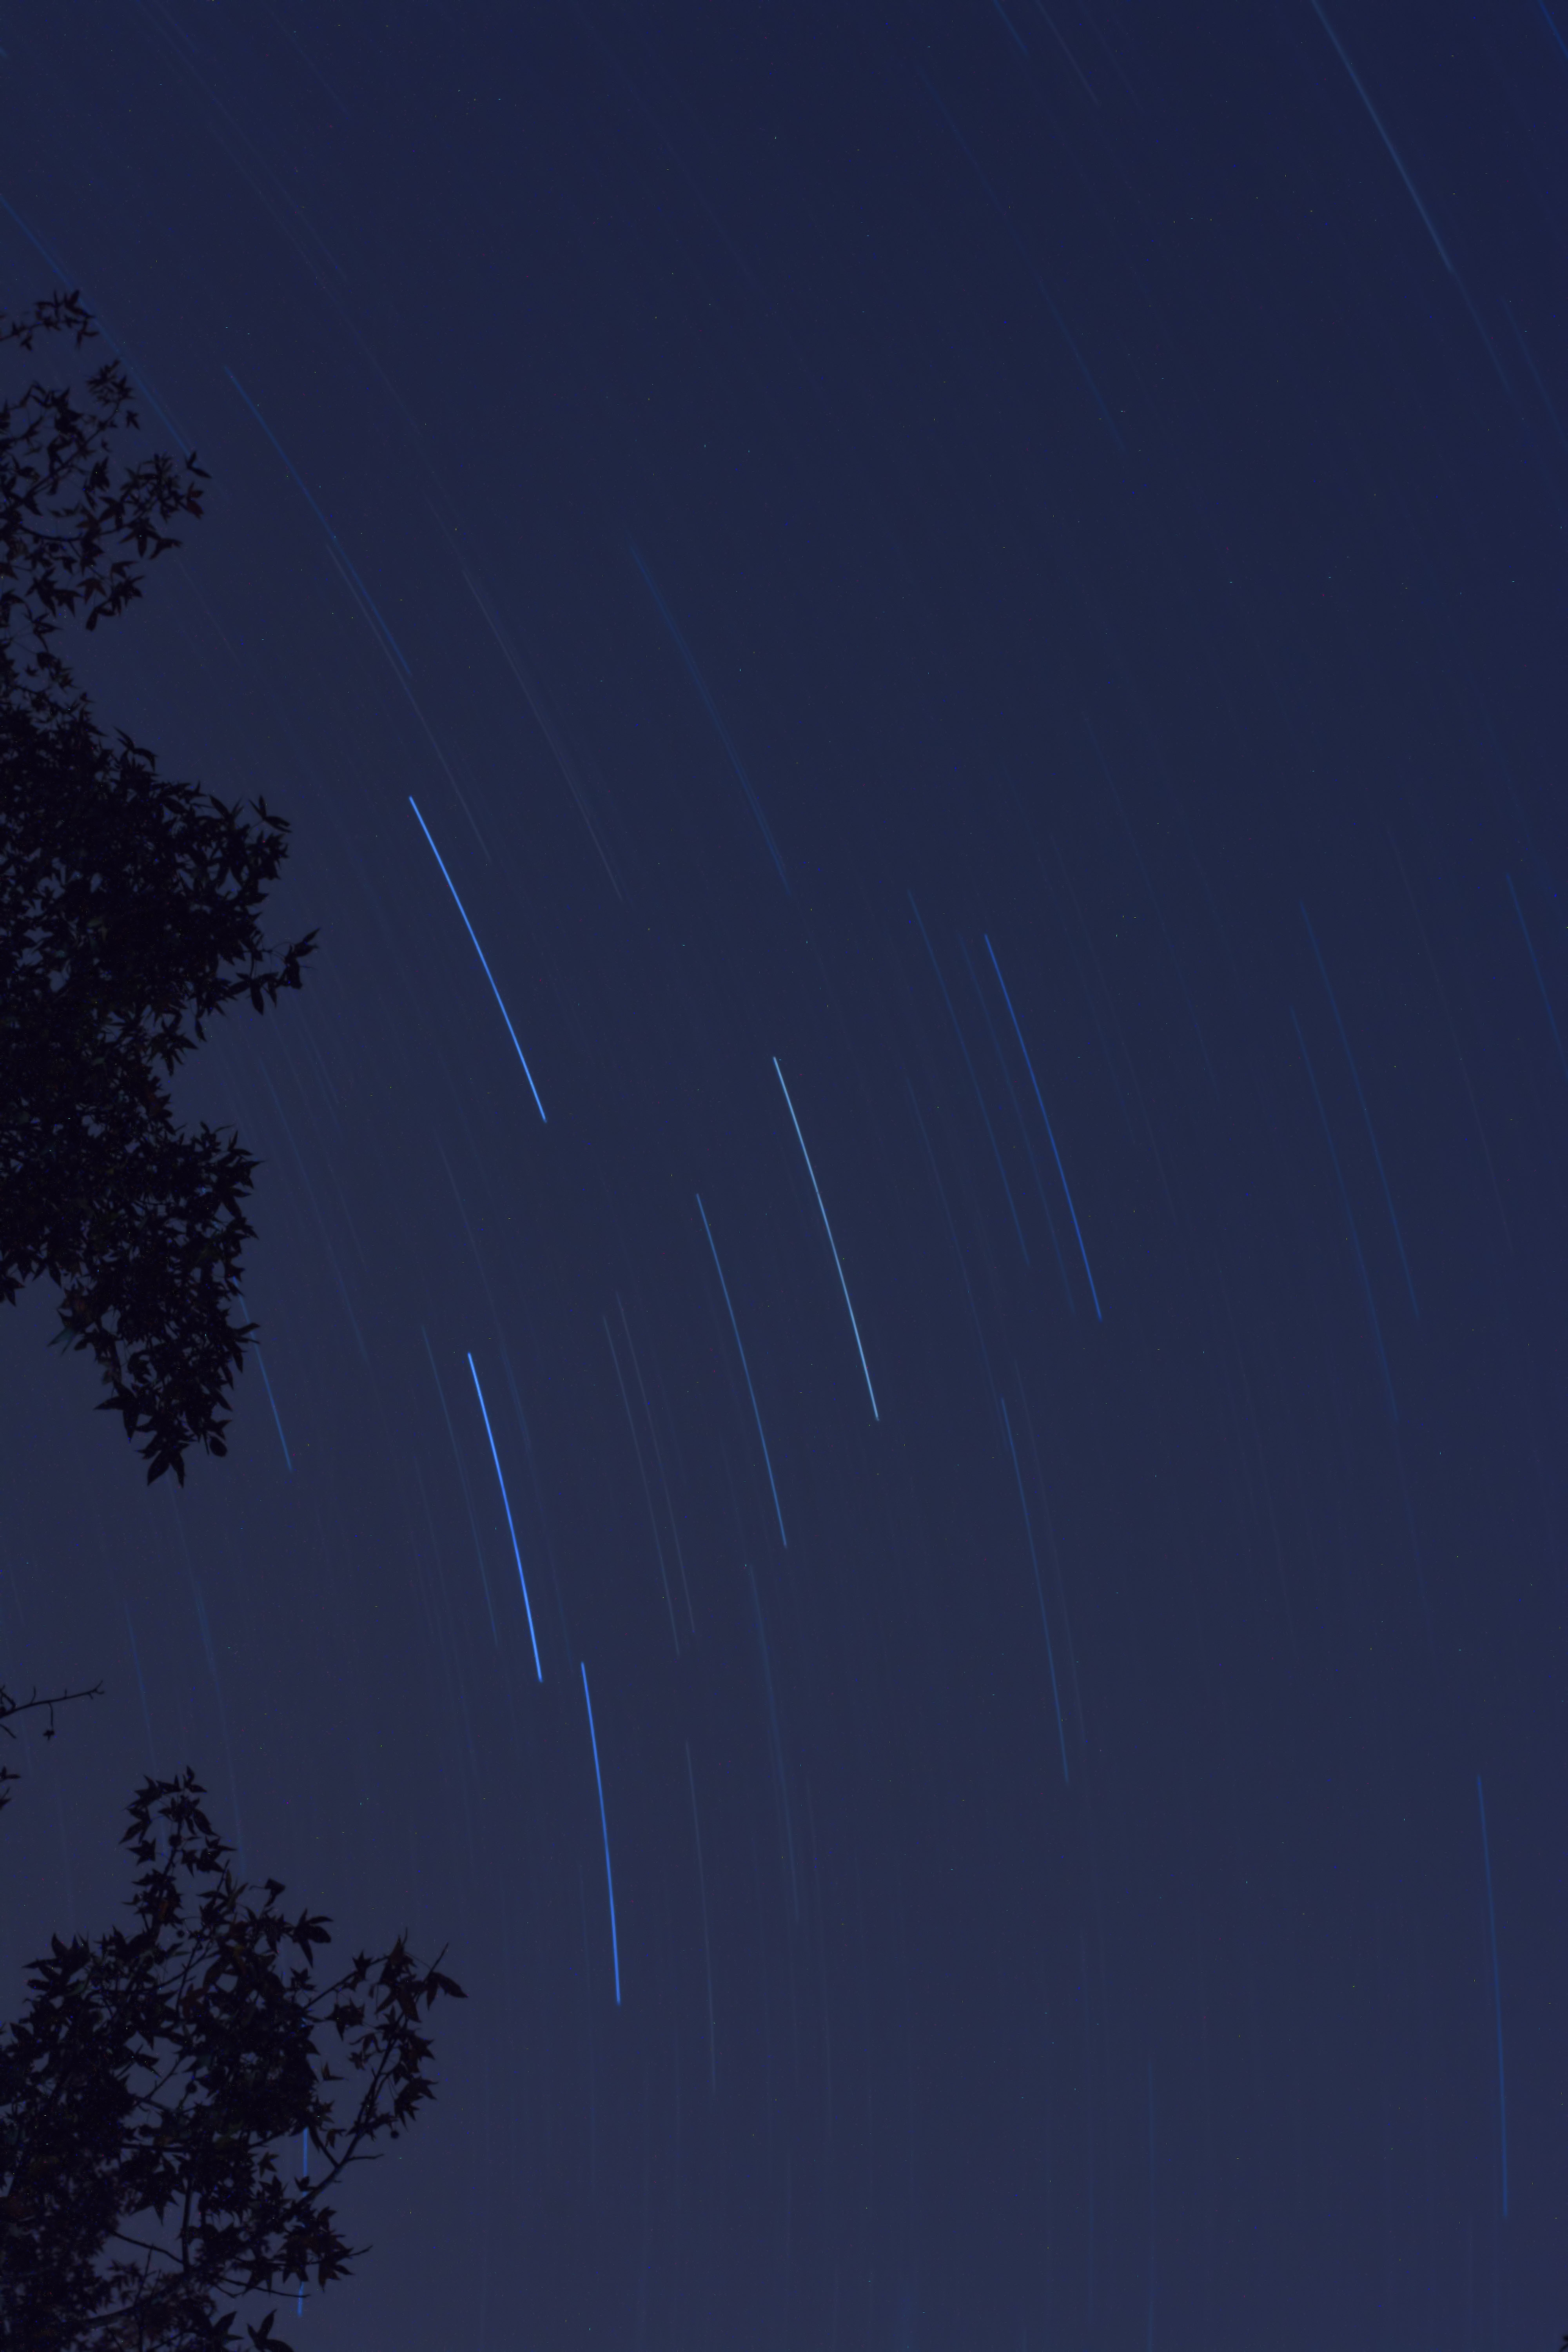 A first attempt at star trails